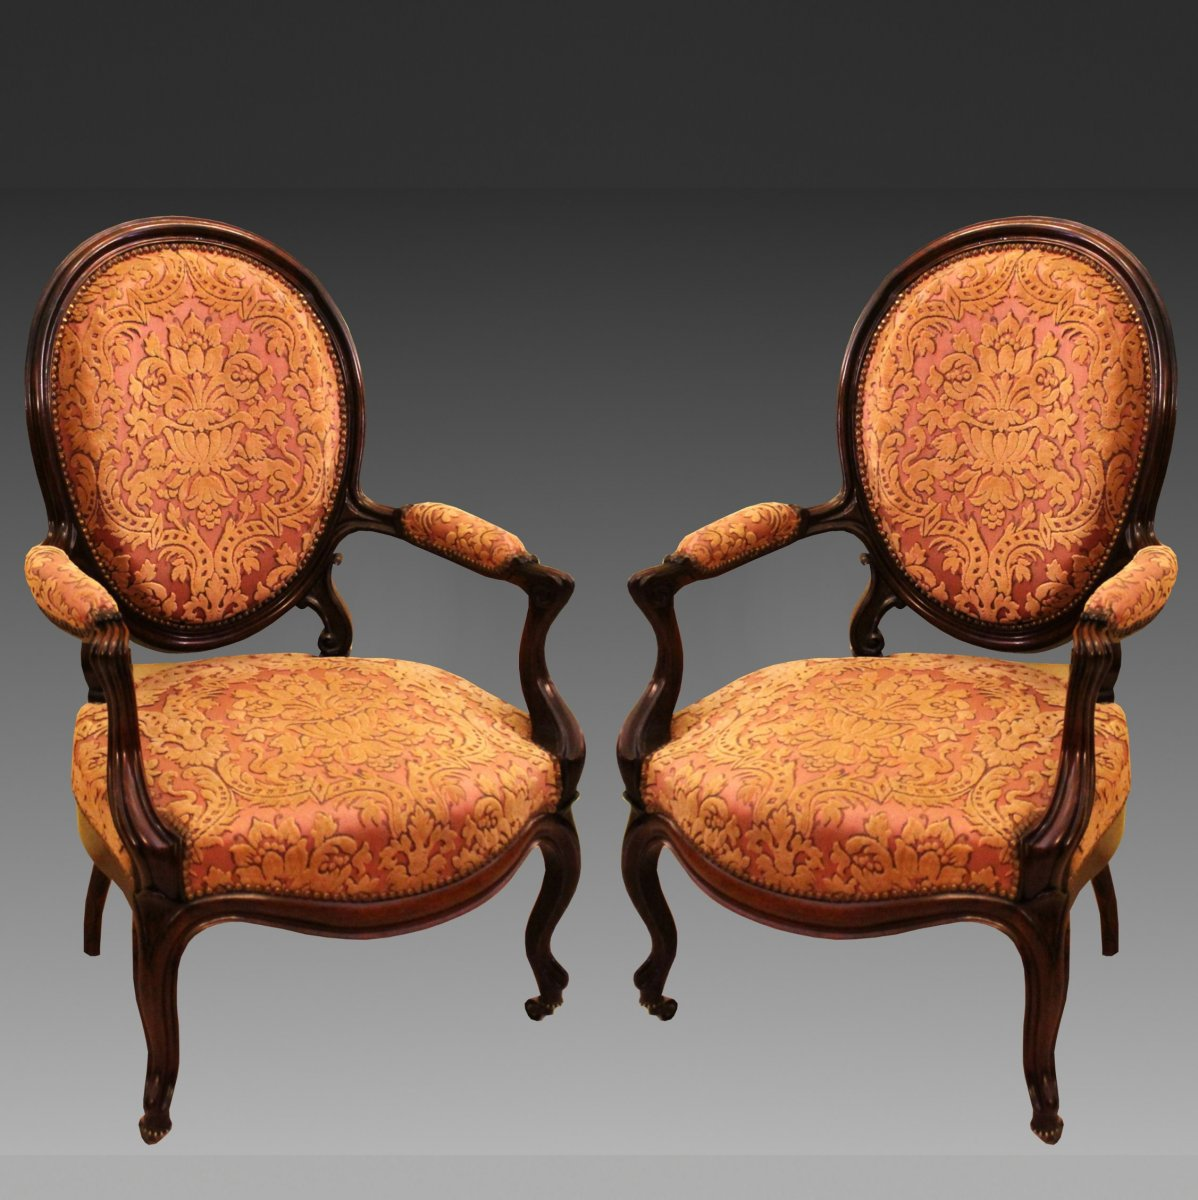 Antique Pair Of Louis Philippe Armchairs In Rosewood - 19th Century